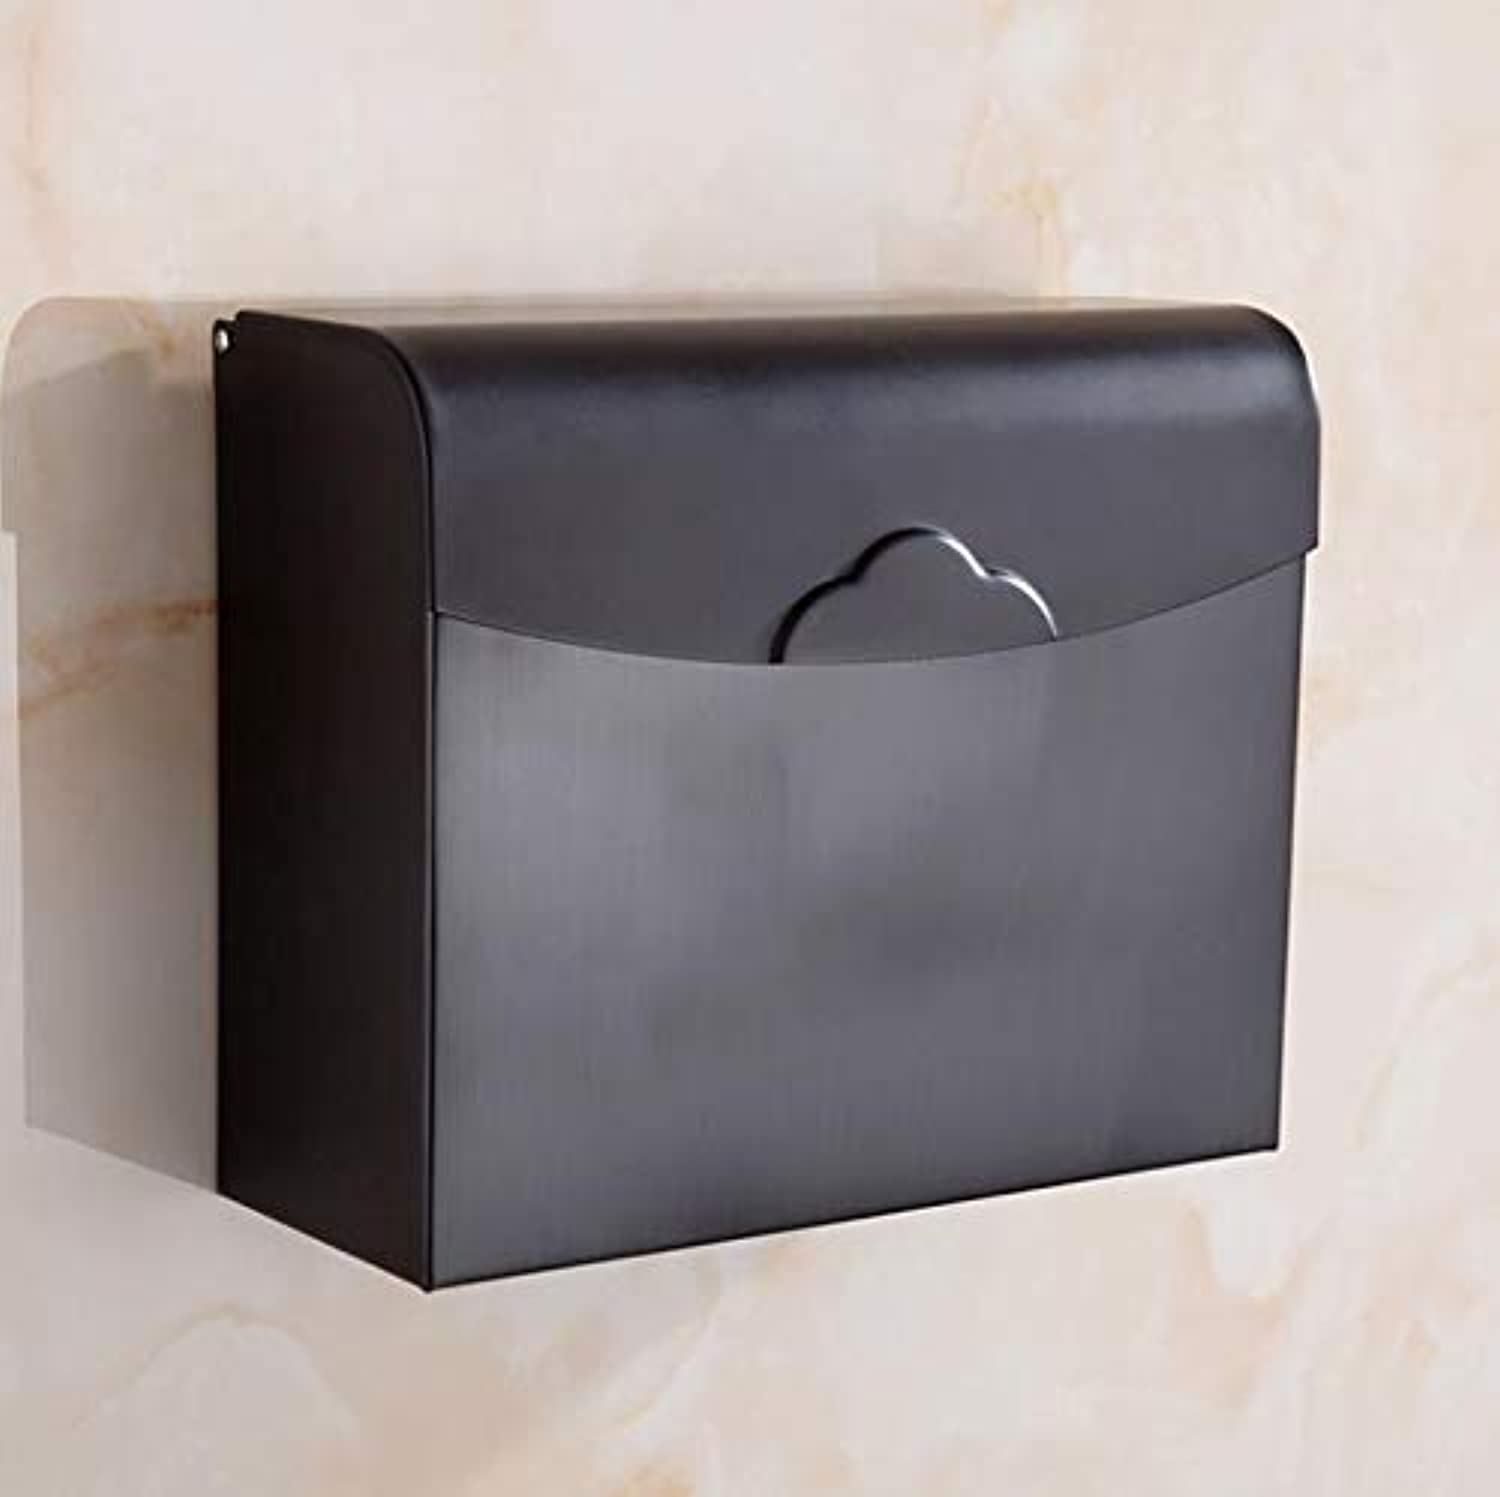 LUDSUY Paper Holders Antique∕Black Toilet Paper Box Wc Paper Rack Waterproof Closed Cover Bathroom Accessories Wall Roll Holder,F